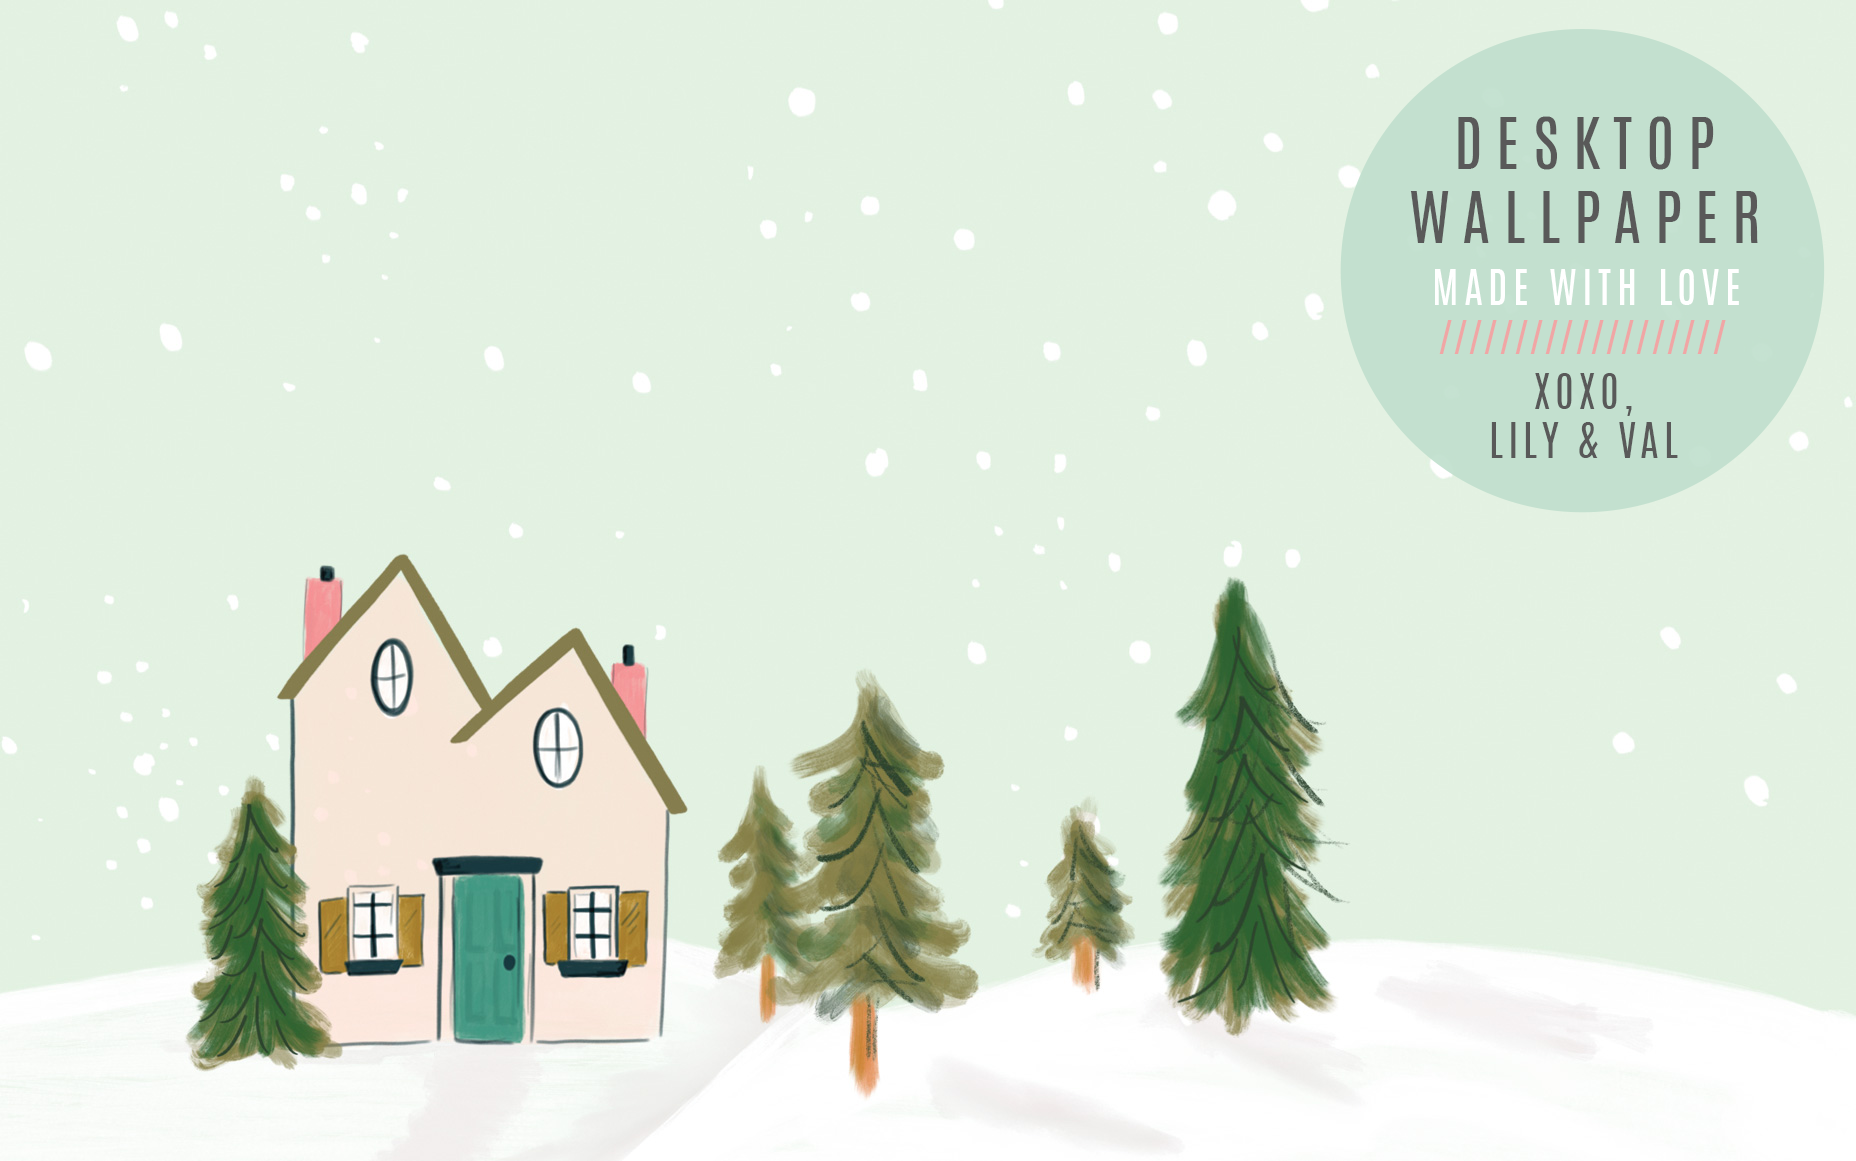 Winter Snow scene desktop background hand-drawn by Valerie McKeehan